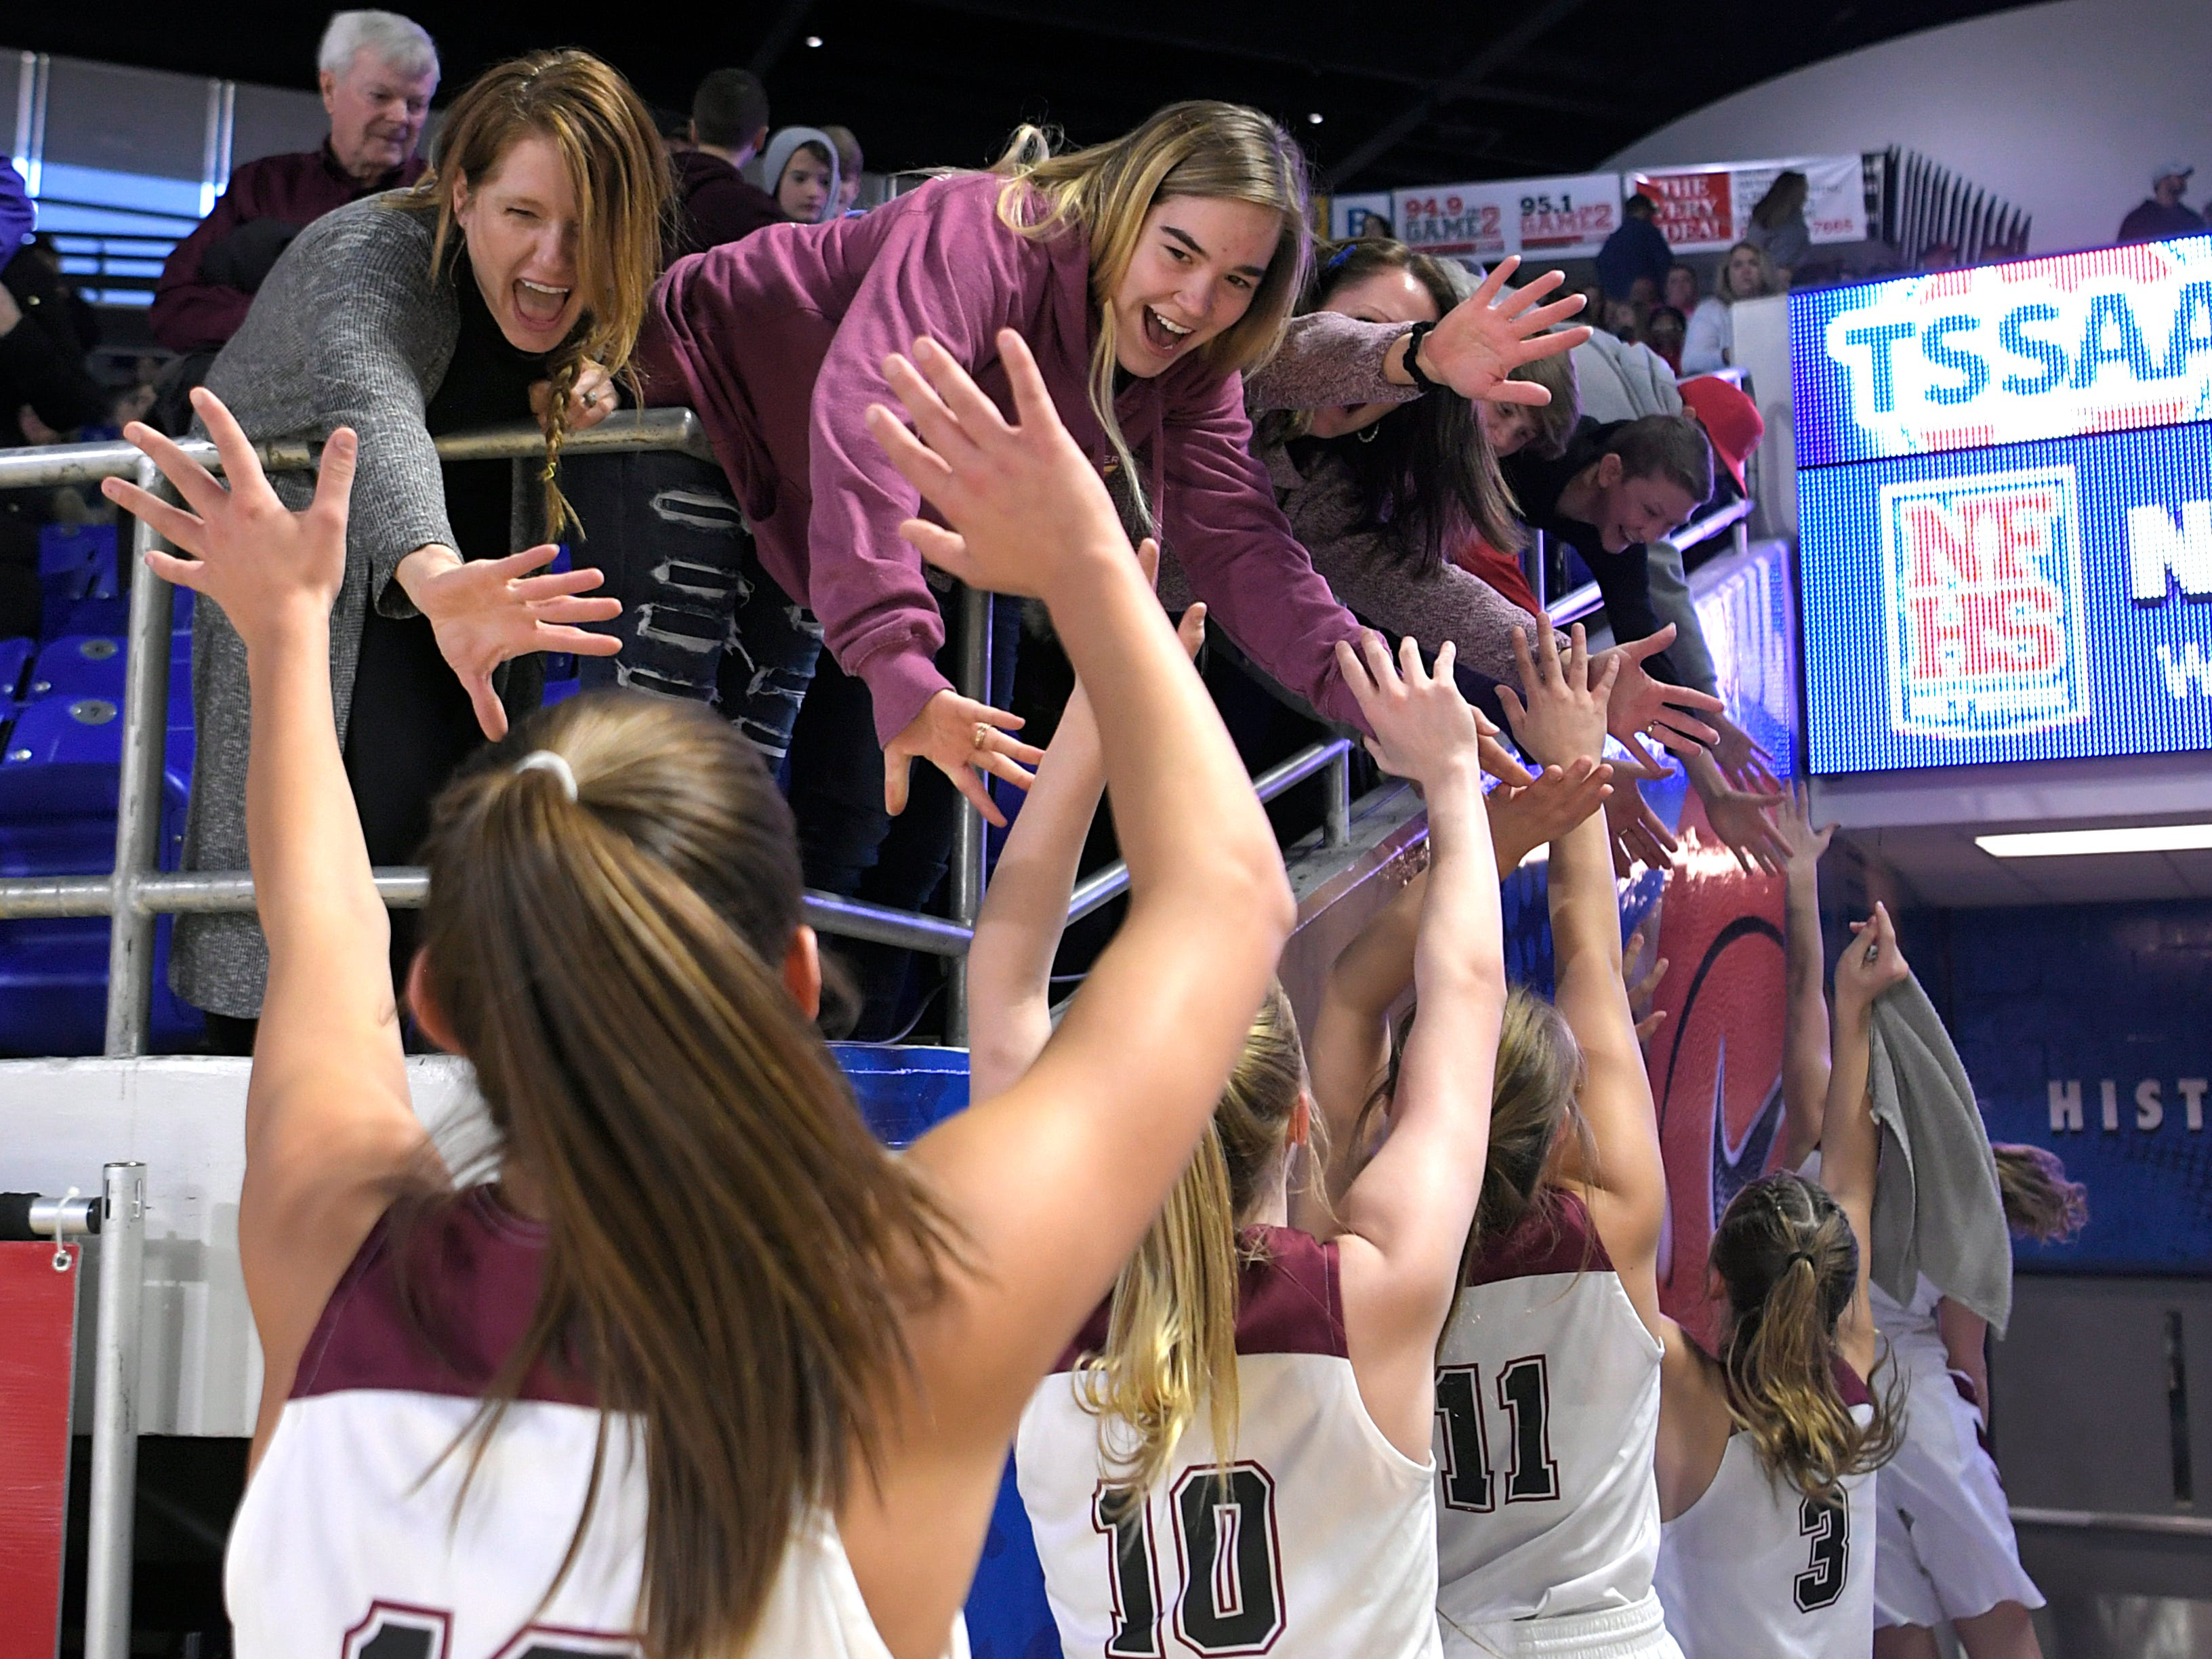 Cheatham County fans cheer on players after beating Grainger during the quarter finals of TSSAA BlueCross Class AA girls basketball championship at MTSU's Murphy Center in Murfreesboro on Wednesday, March 6, 2019.